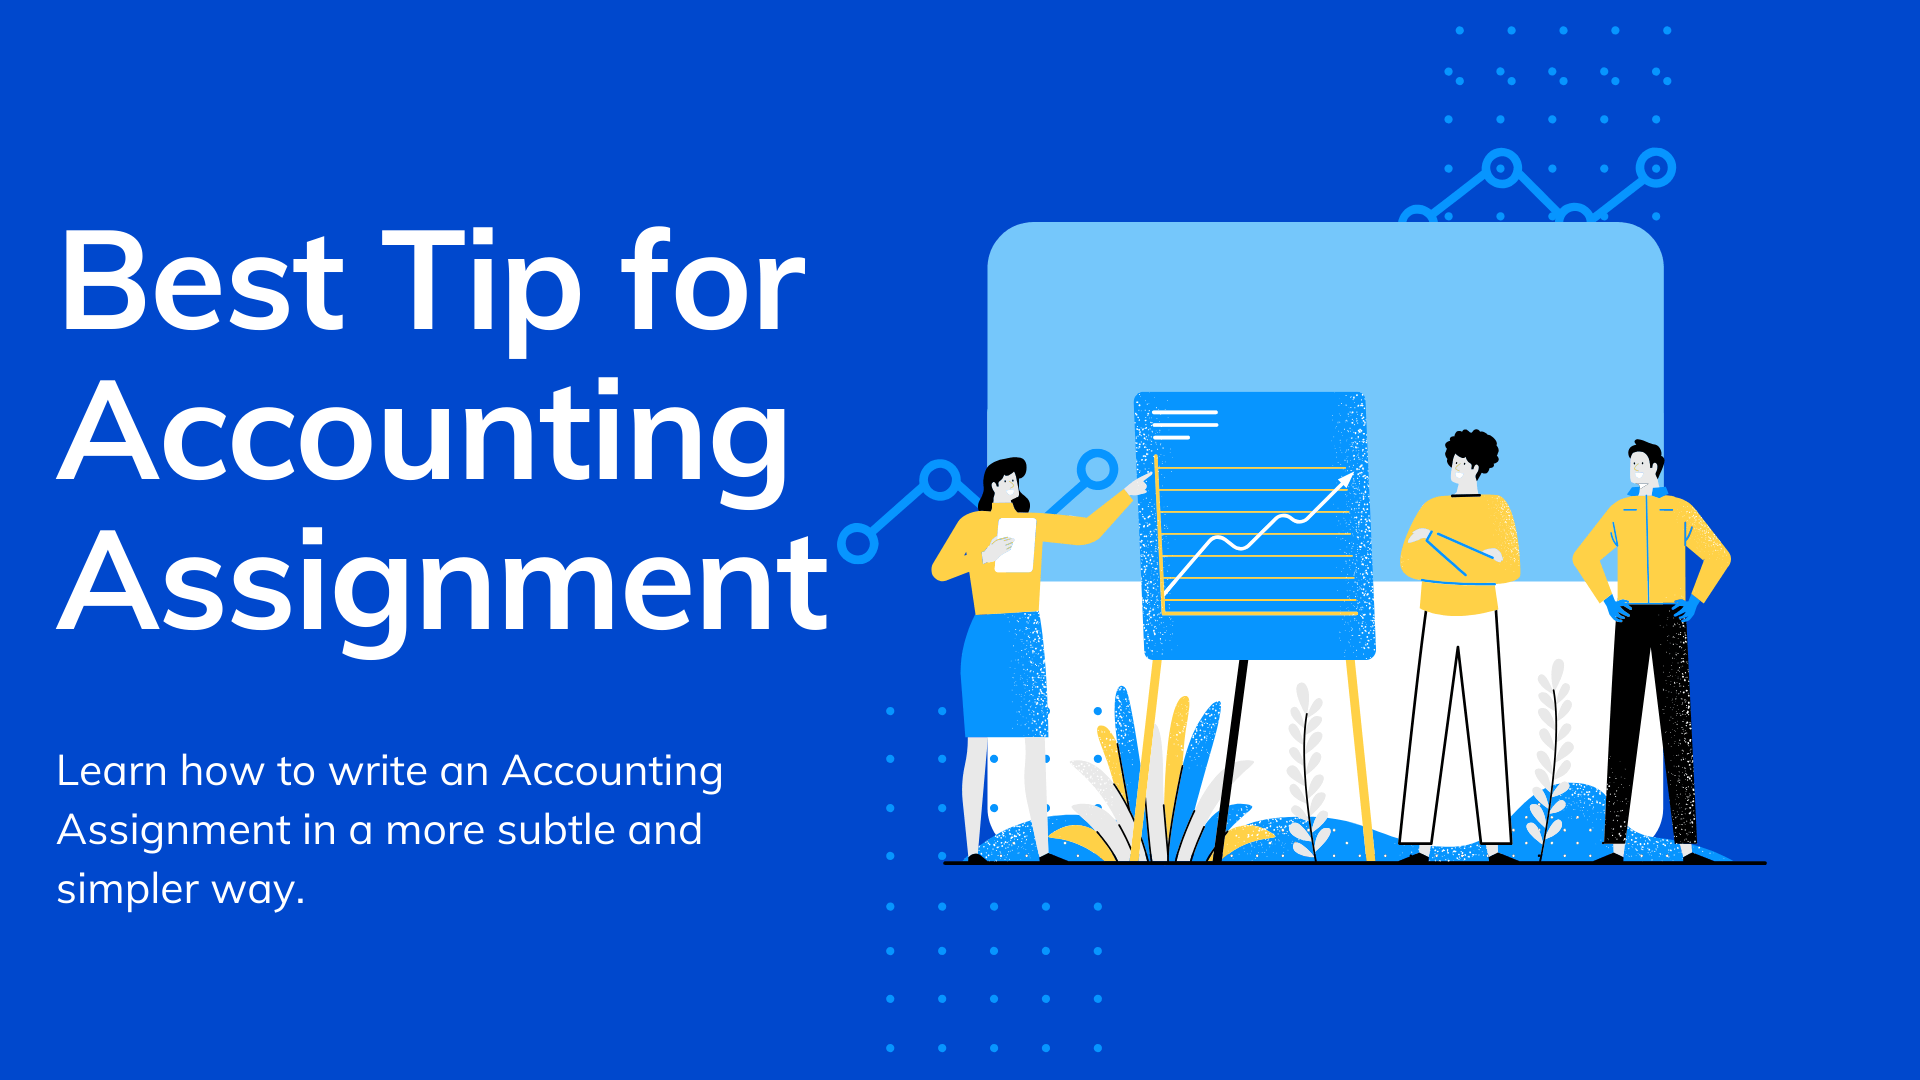 Useful tips to write an accounting assignment